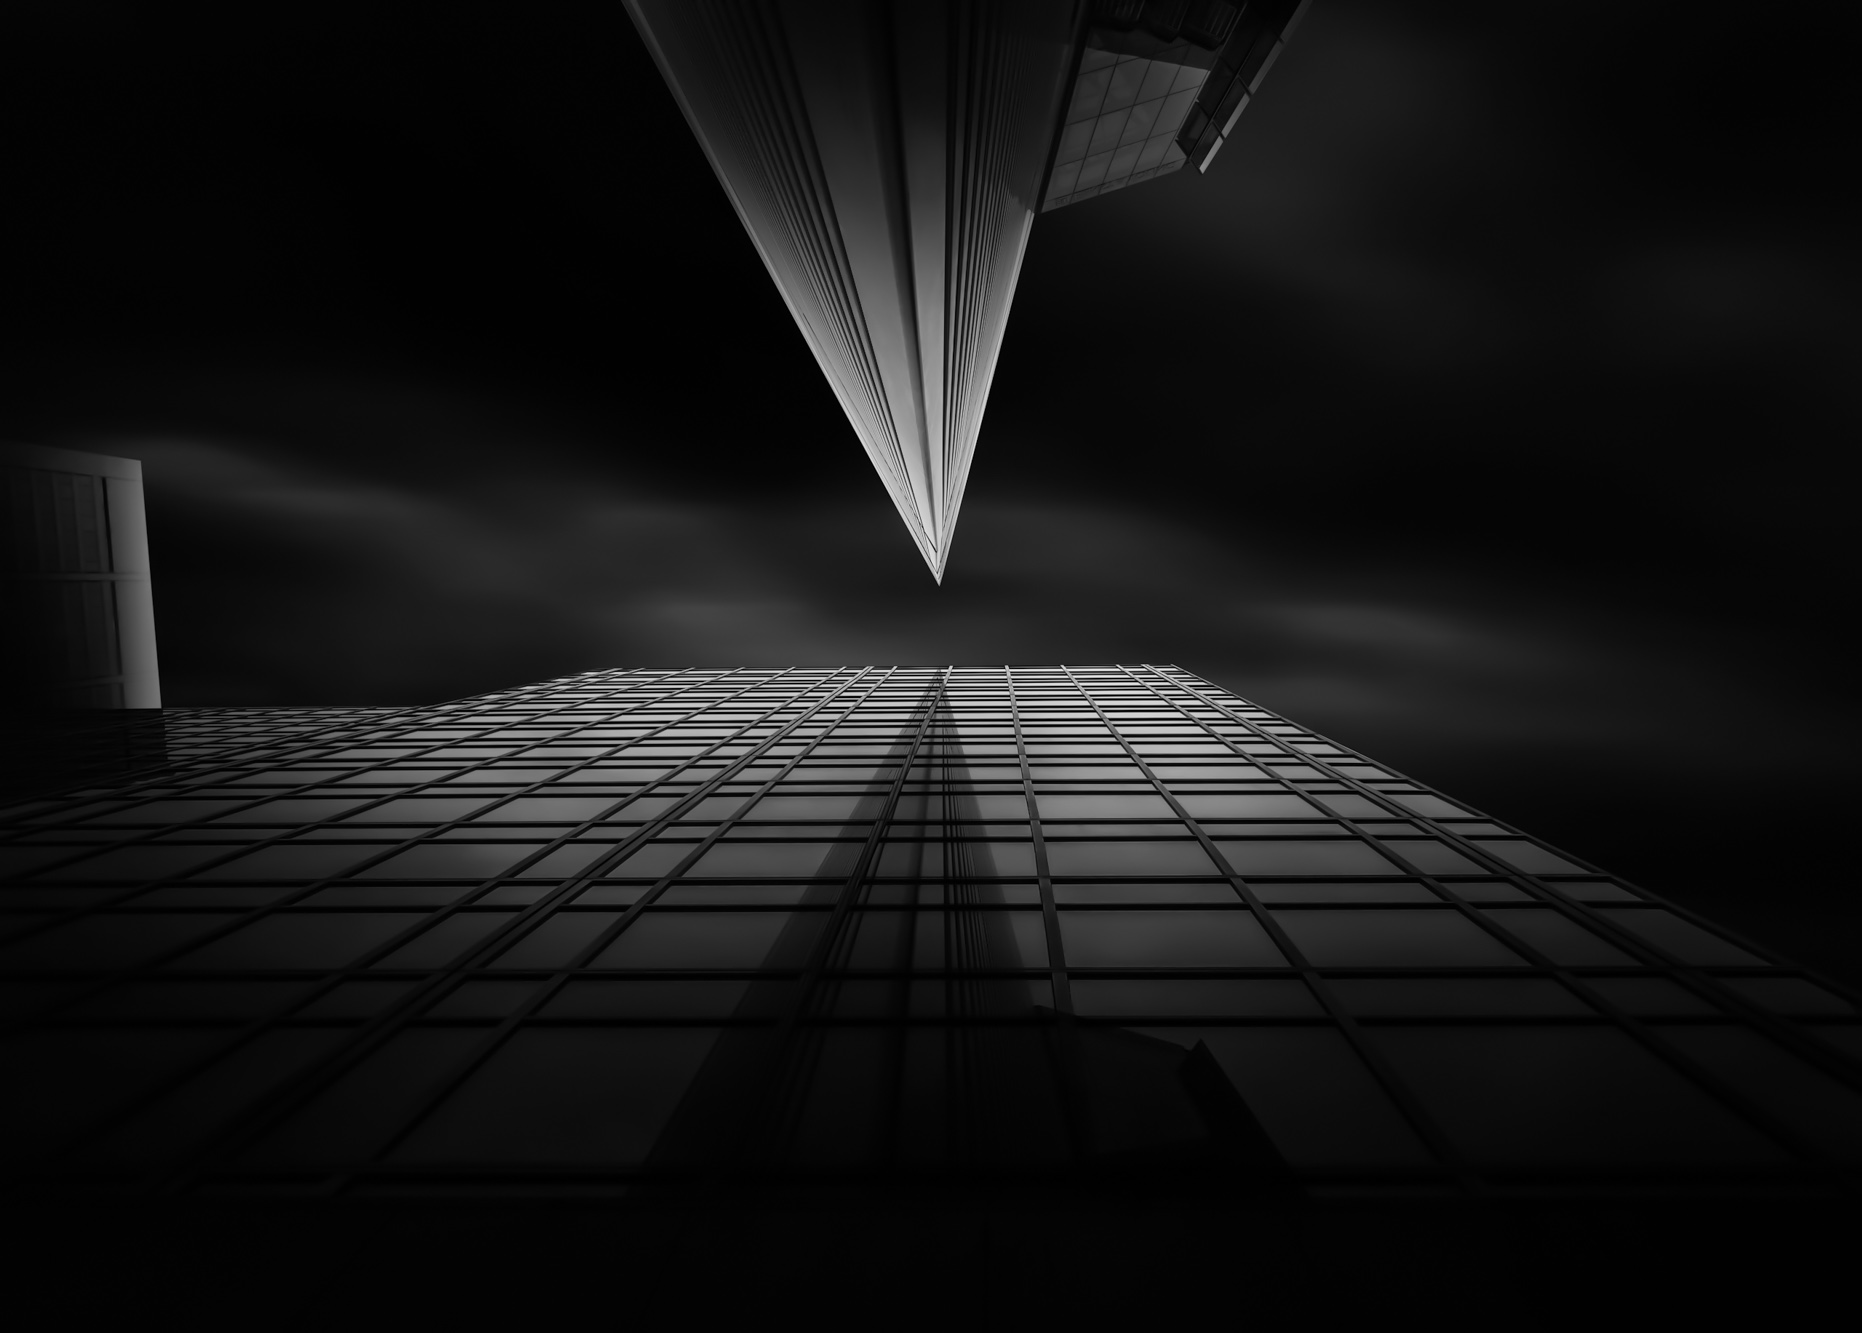 long exposure architecture photograph in dark tones of sharp pointed modern architectural buildings